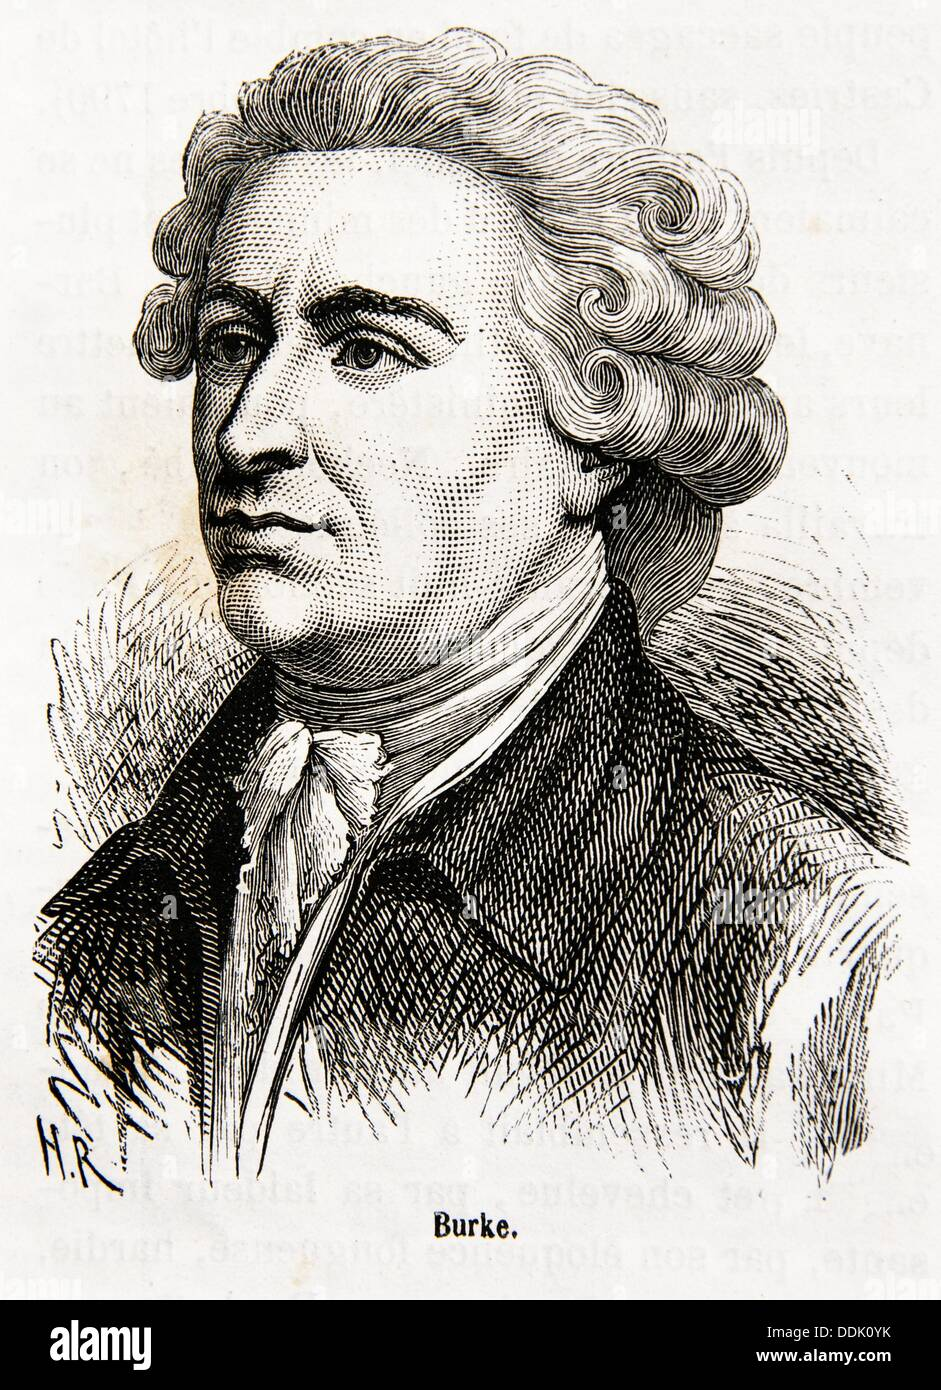 Edmund Burke PC 12 January 1729 - 9 July 1797 was an Anglo-Irish statesman,  author, orator, political theorist, and philosopher